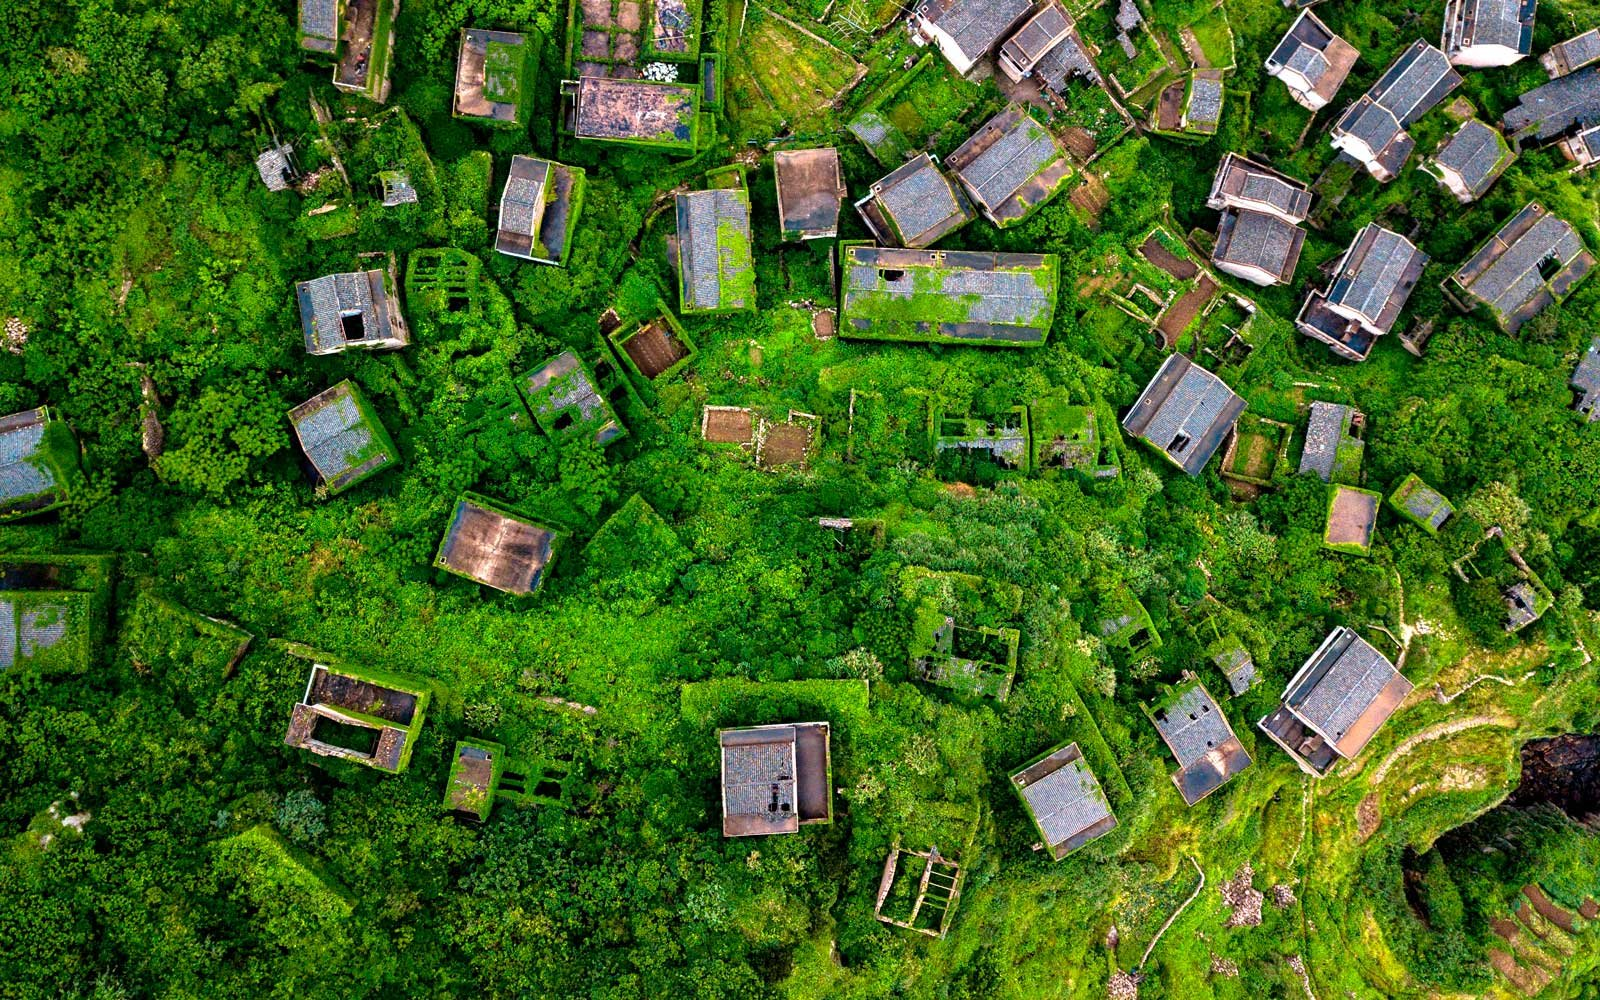 This aerial picture taken on May 31, 2018 shows abandoned village houses covered with overgrown vegetation in Houtouwan on Shengshan island, China